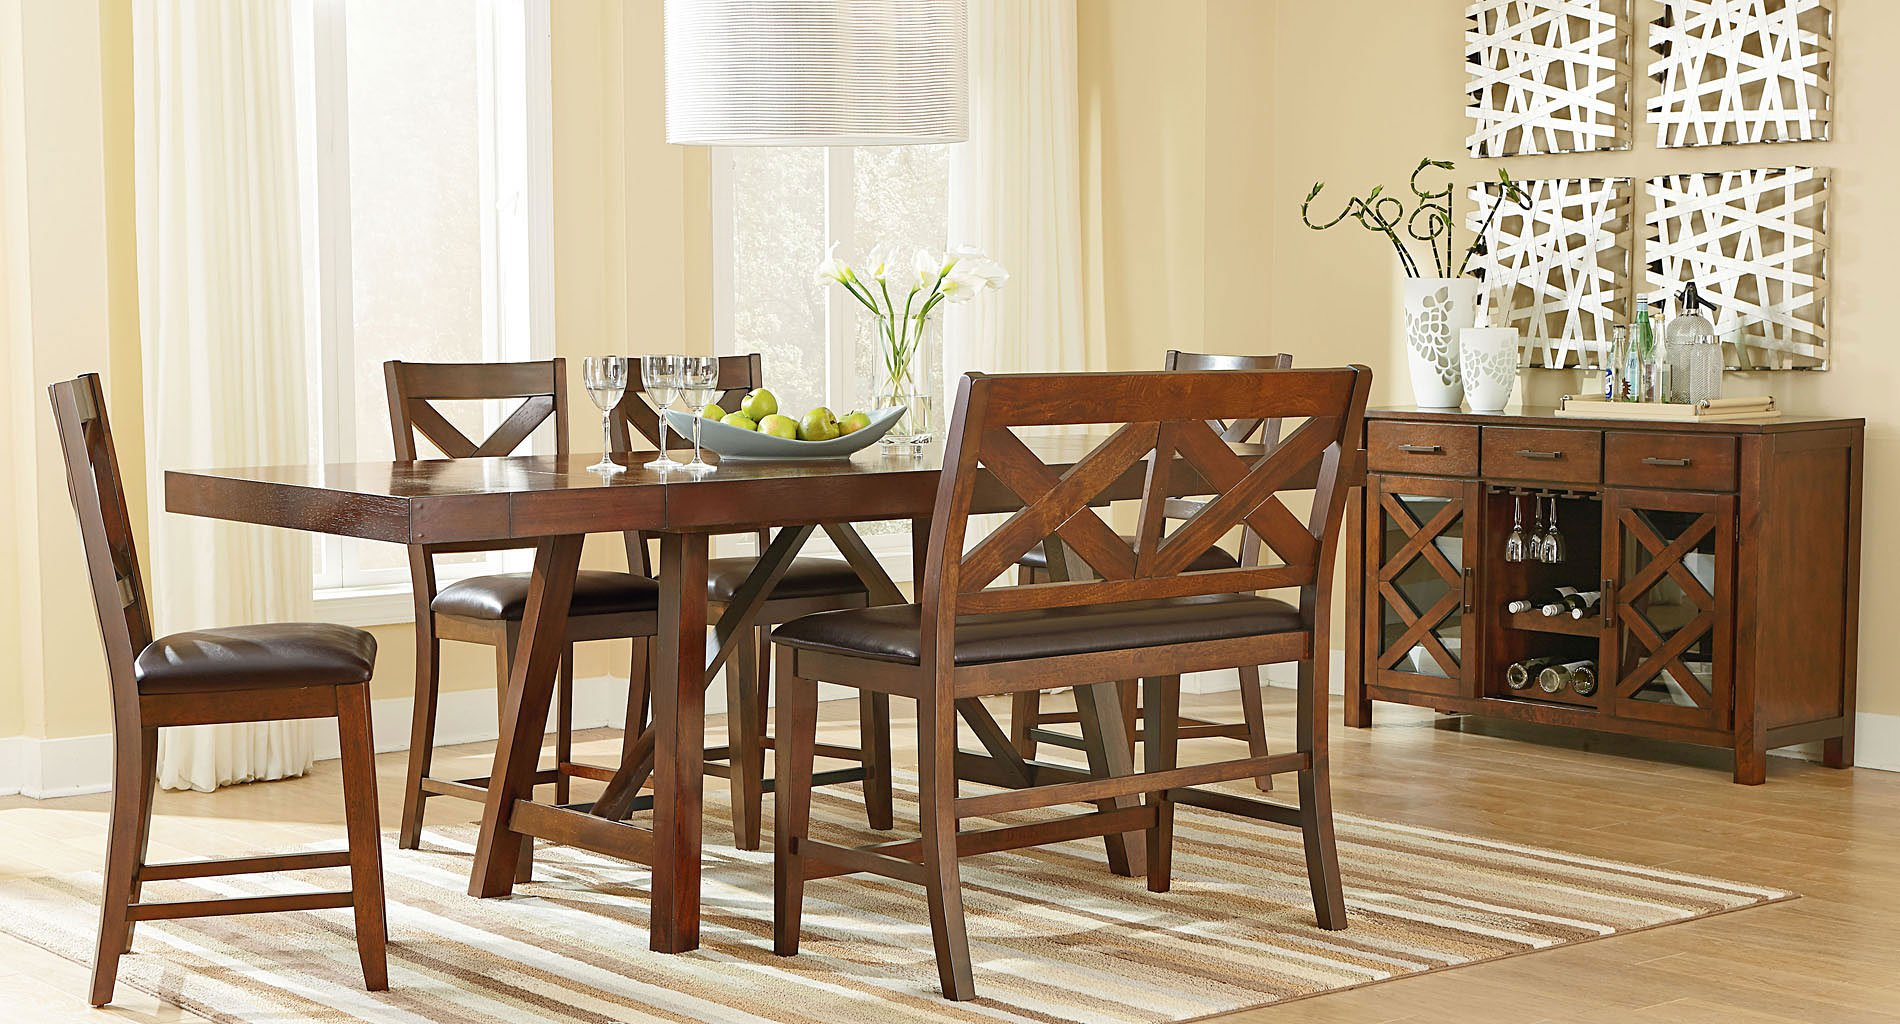 omaha counter height dining set w bench brown standard